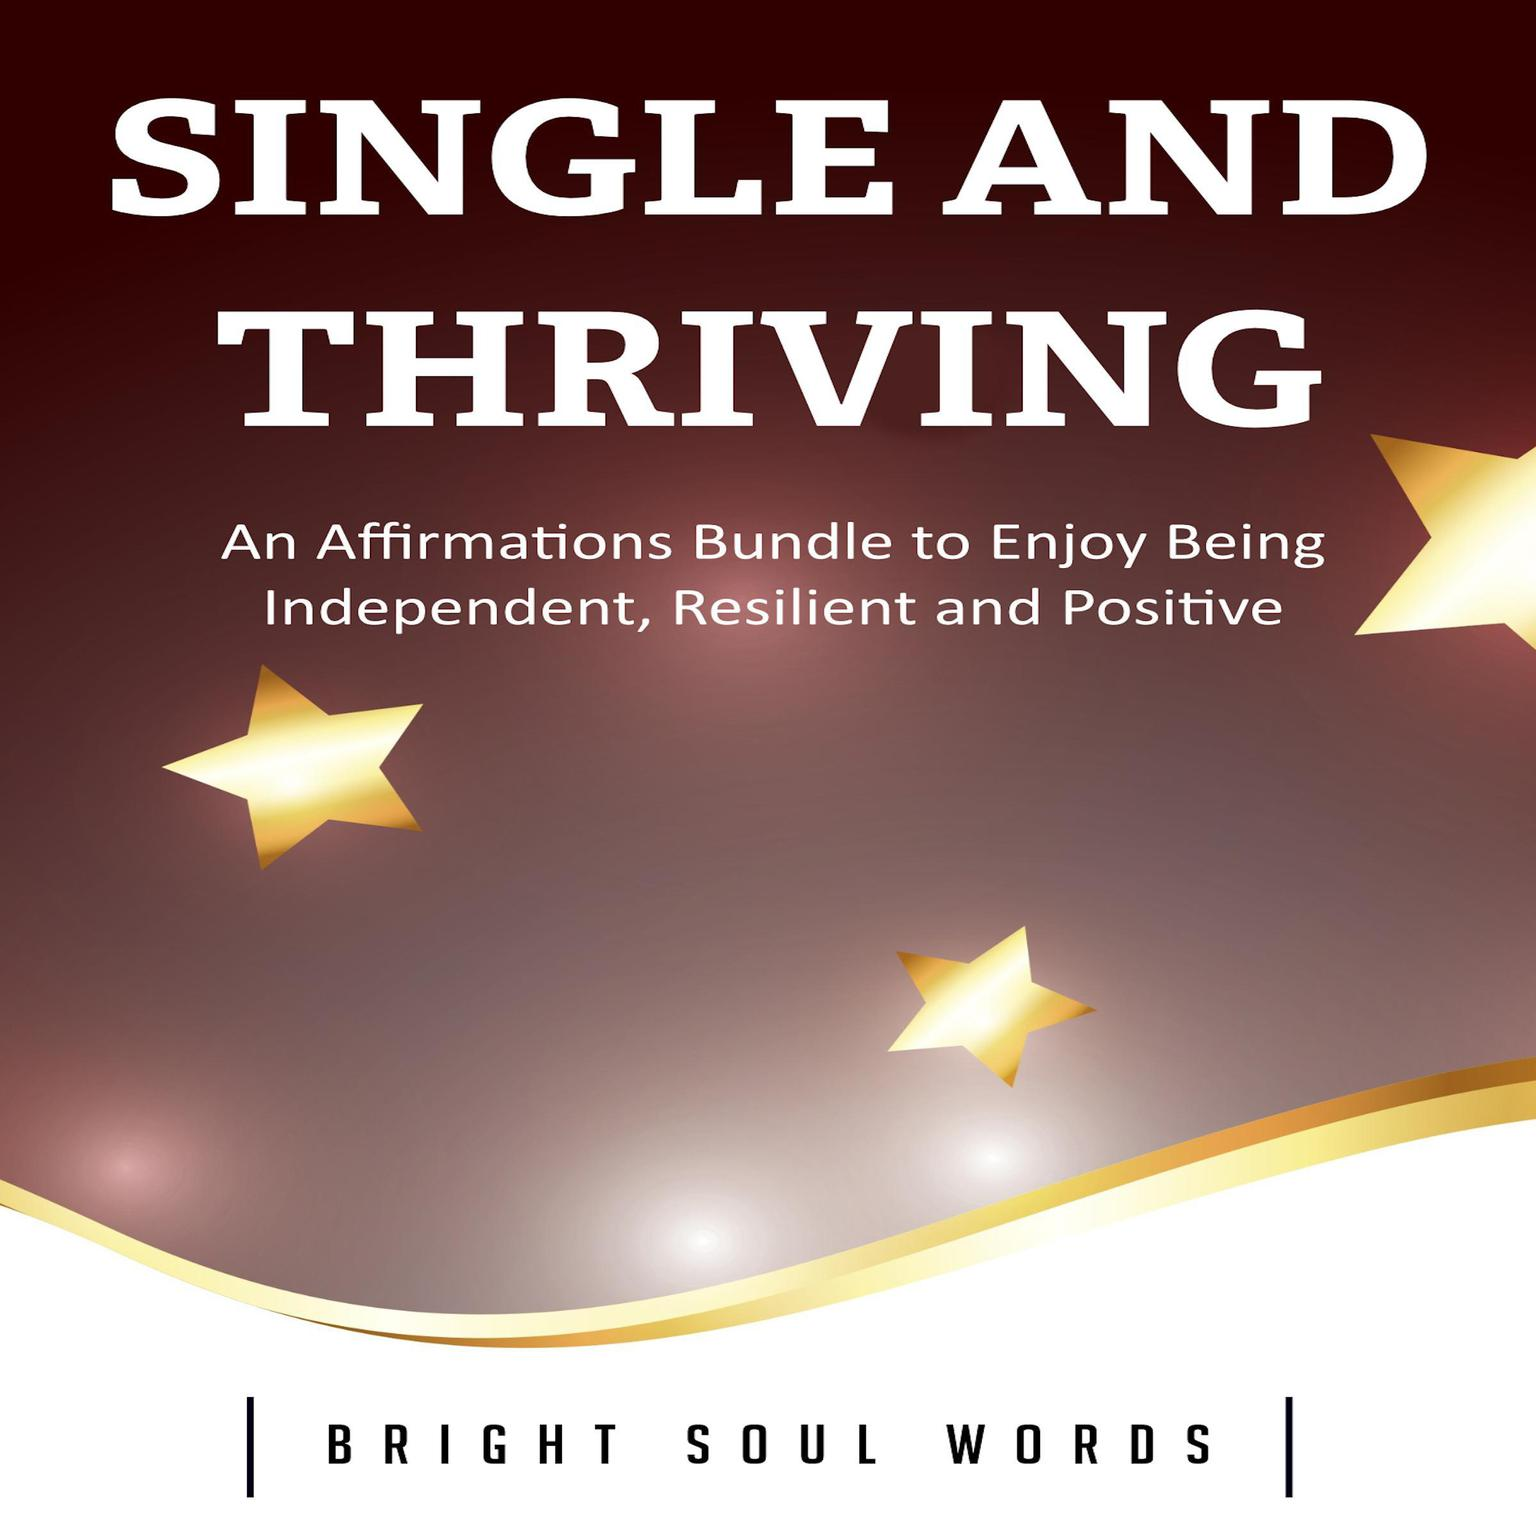 Single and Thriving: An Affirmations Bundle to Enjoy Being Independent, Resilient and Positive Audiobook, by Bright Soul Words